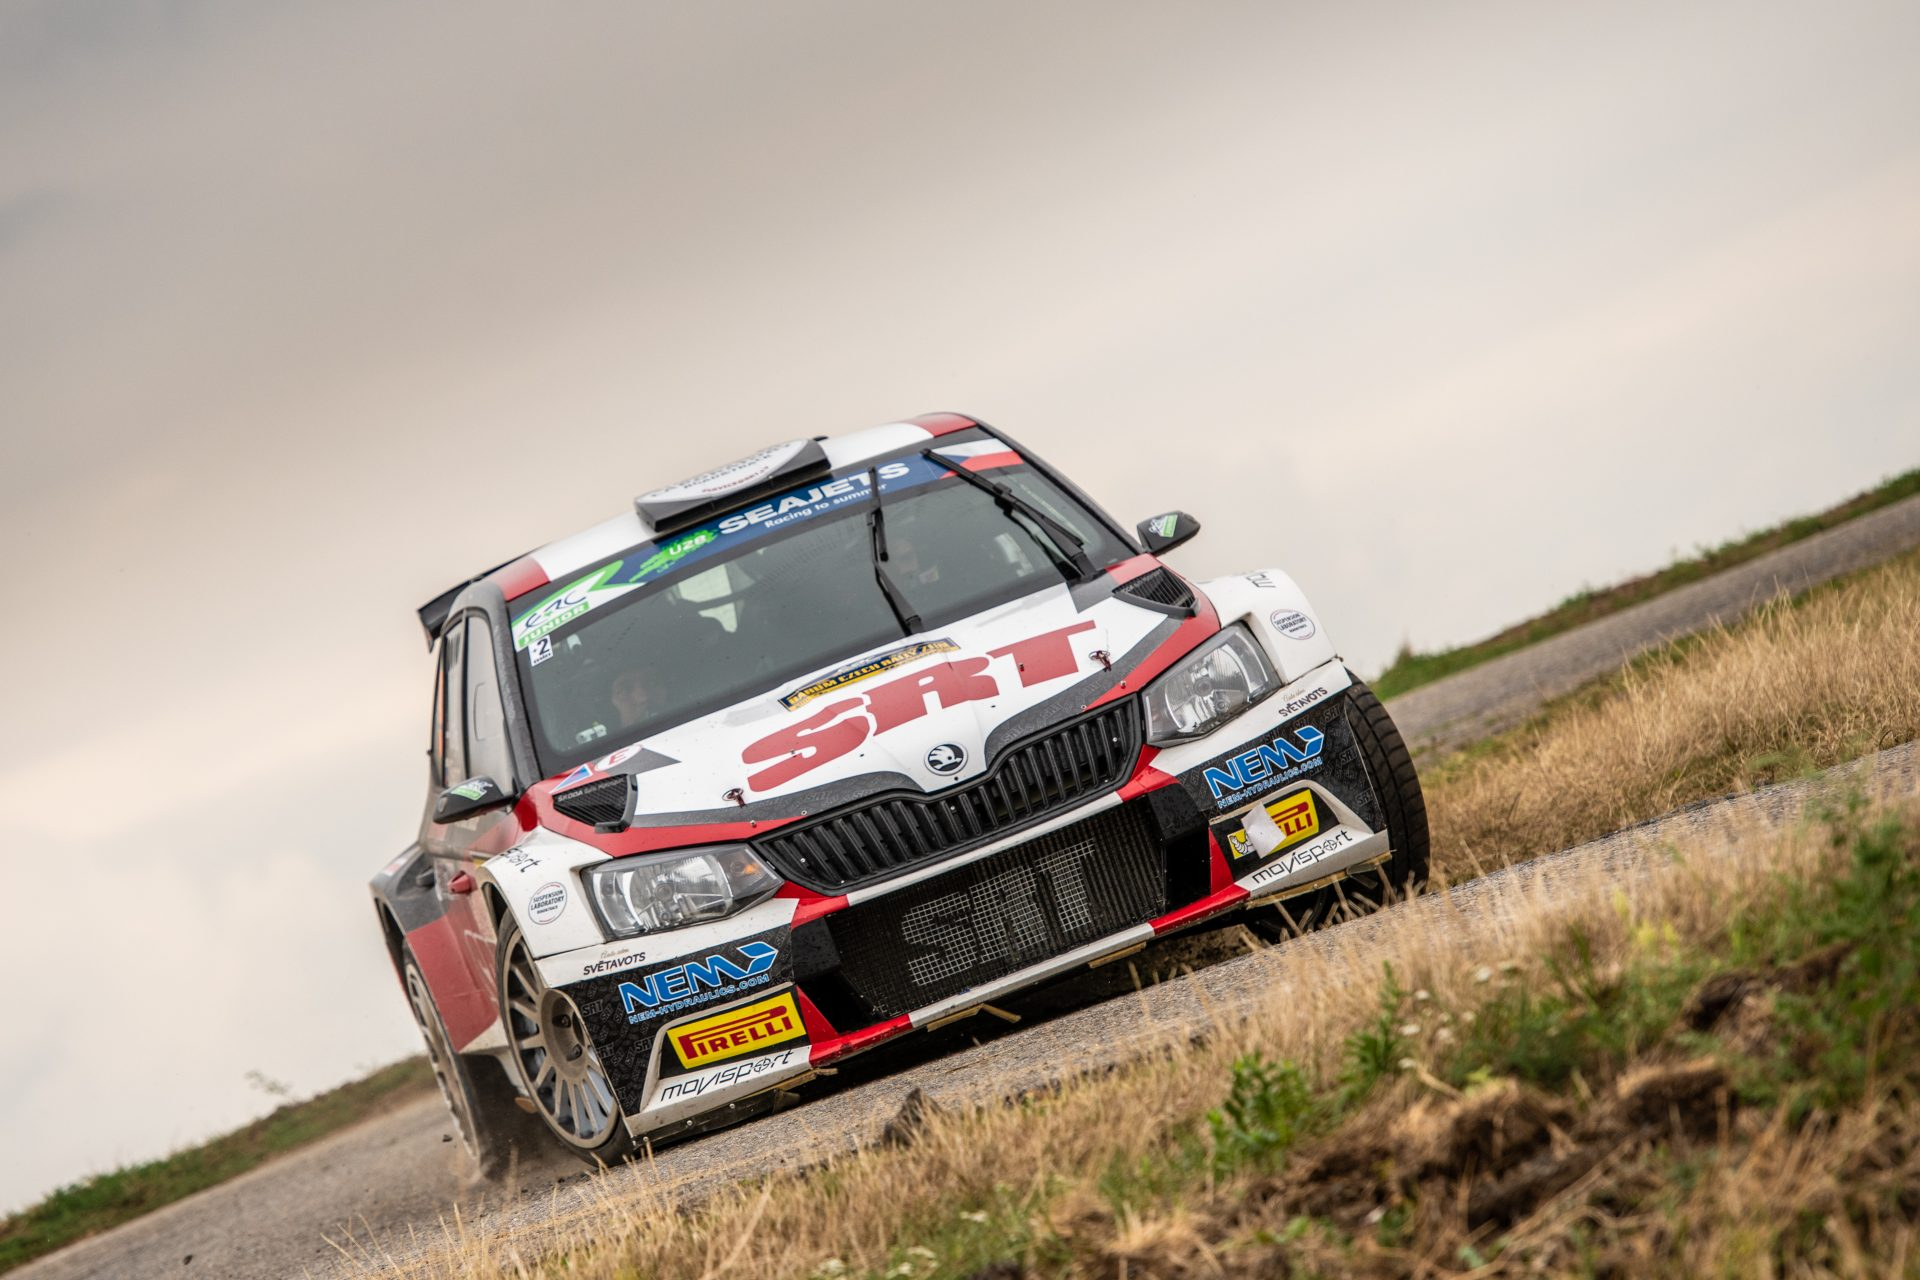 We Ask the Champions: Why Did You Pick FABIA R5 Over its Rivals?